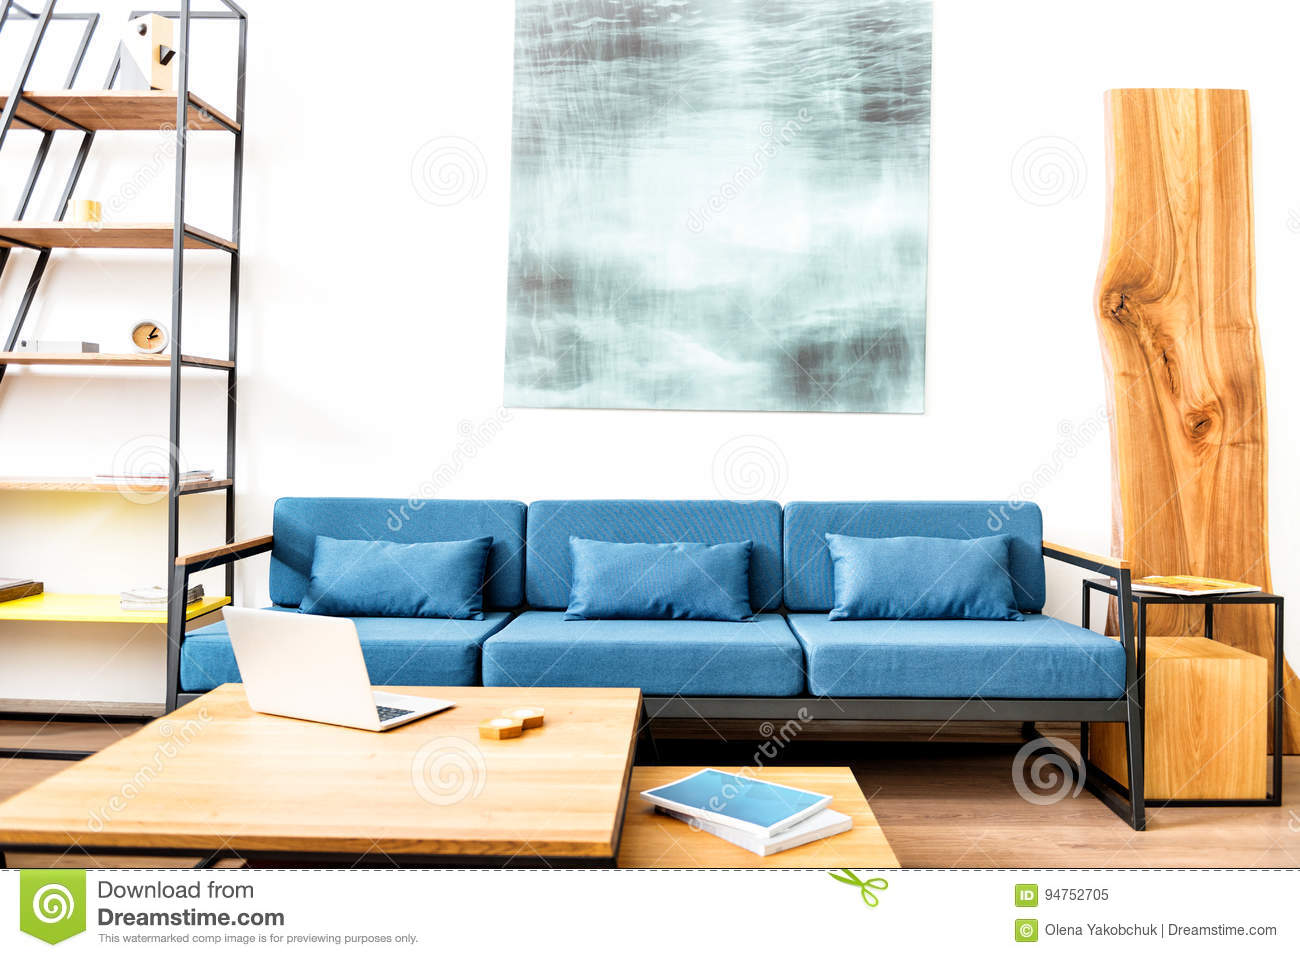 Settee With Image Above And Bookcase In Room